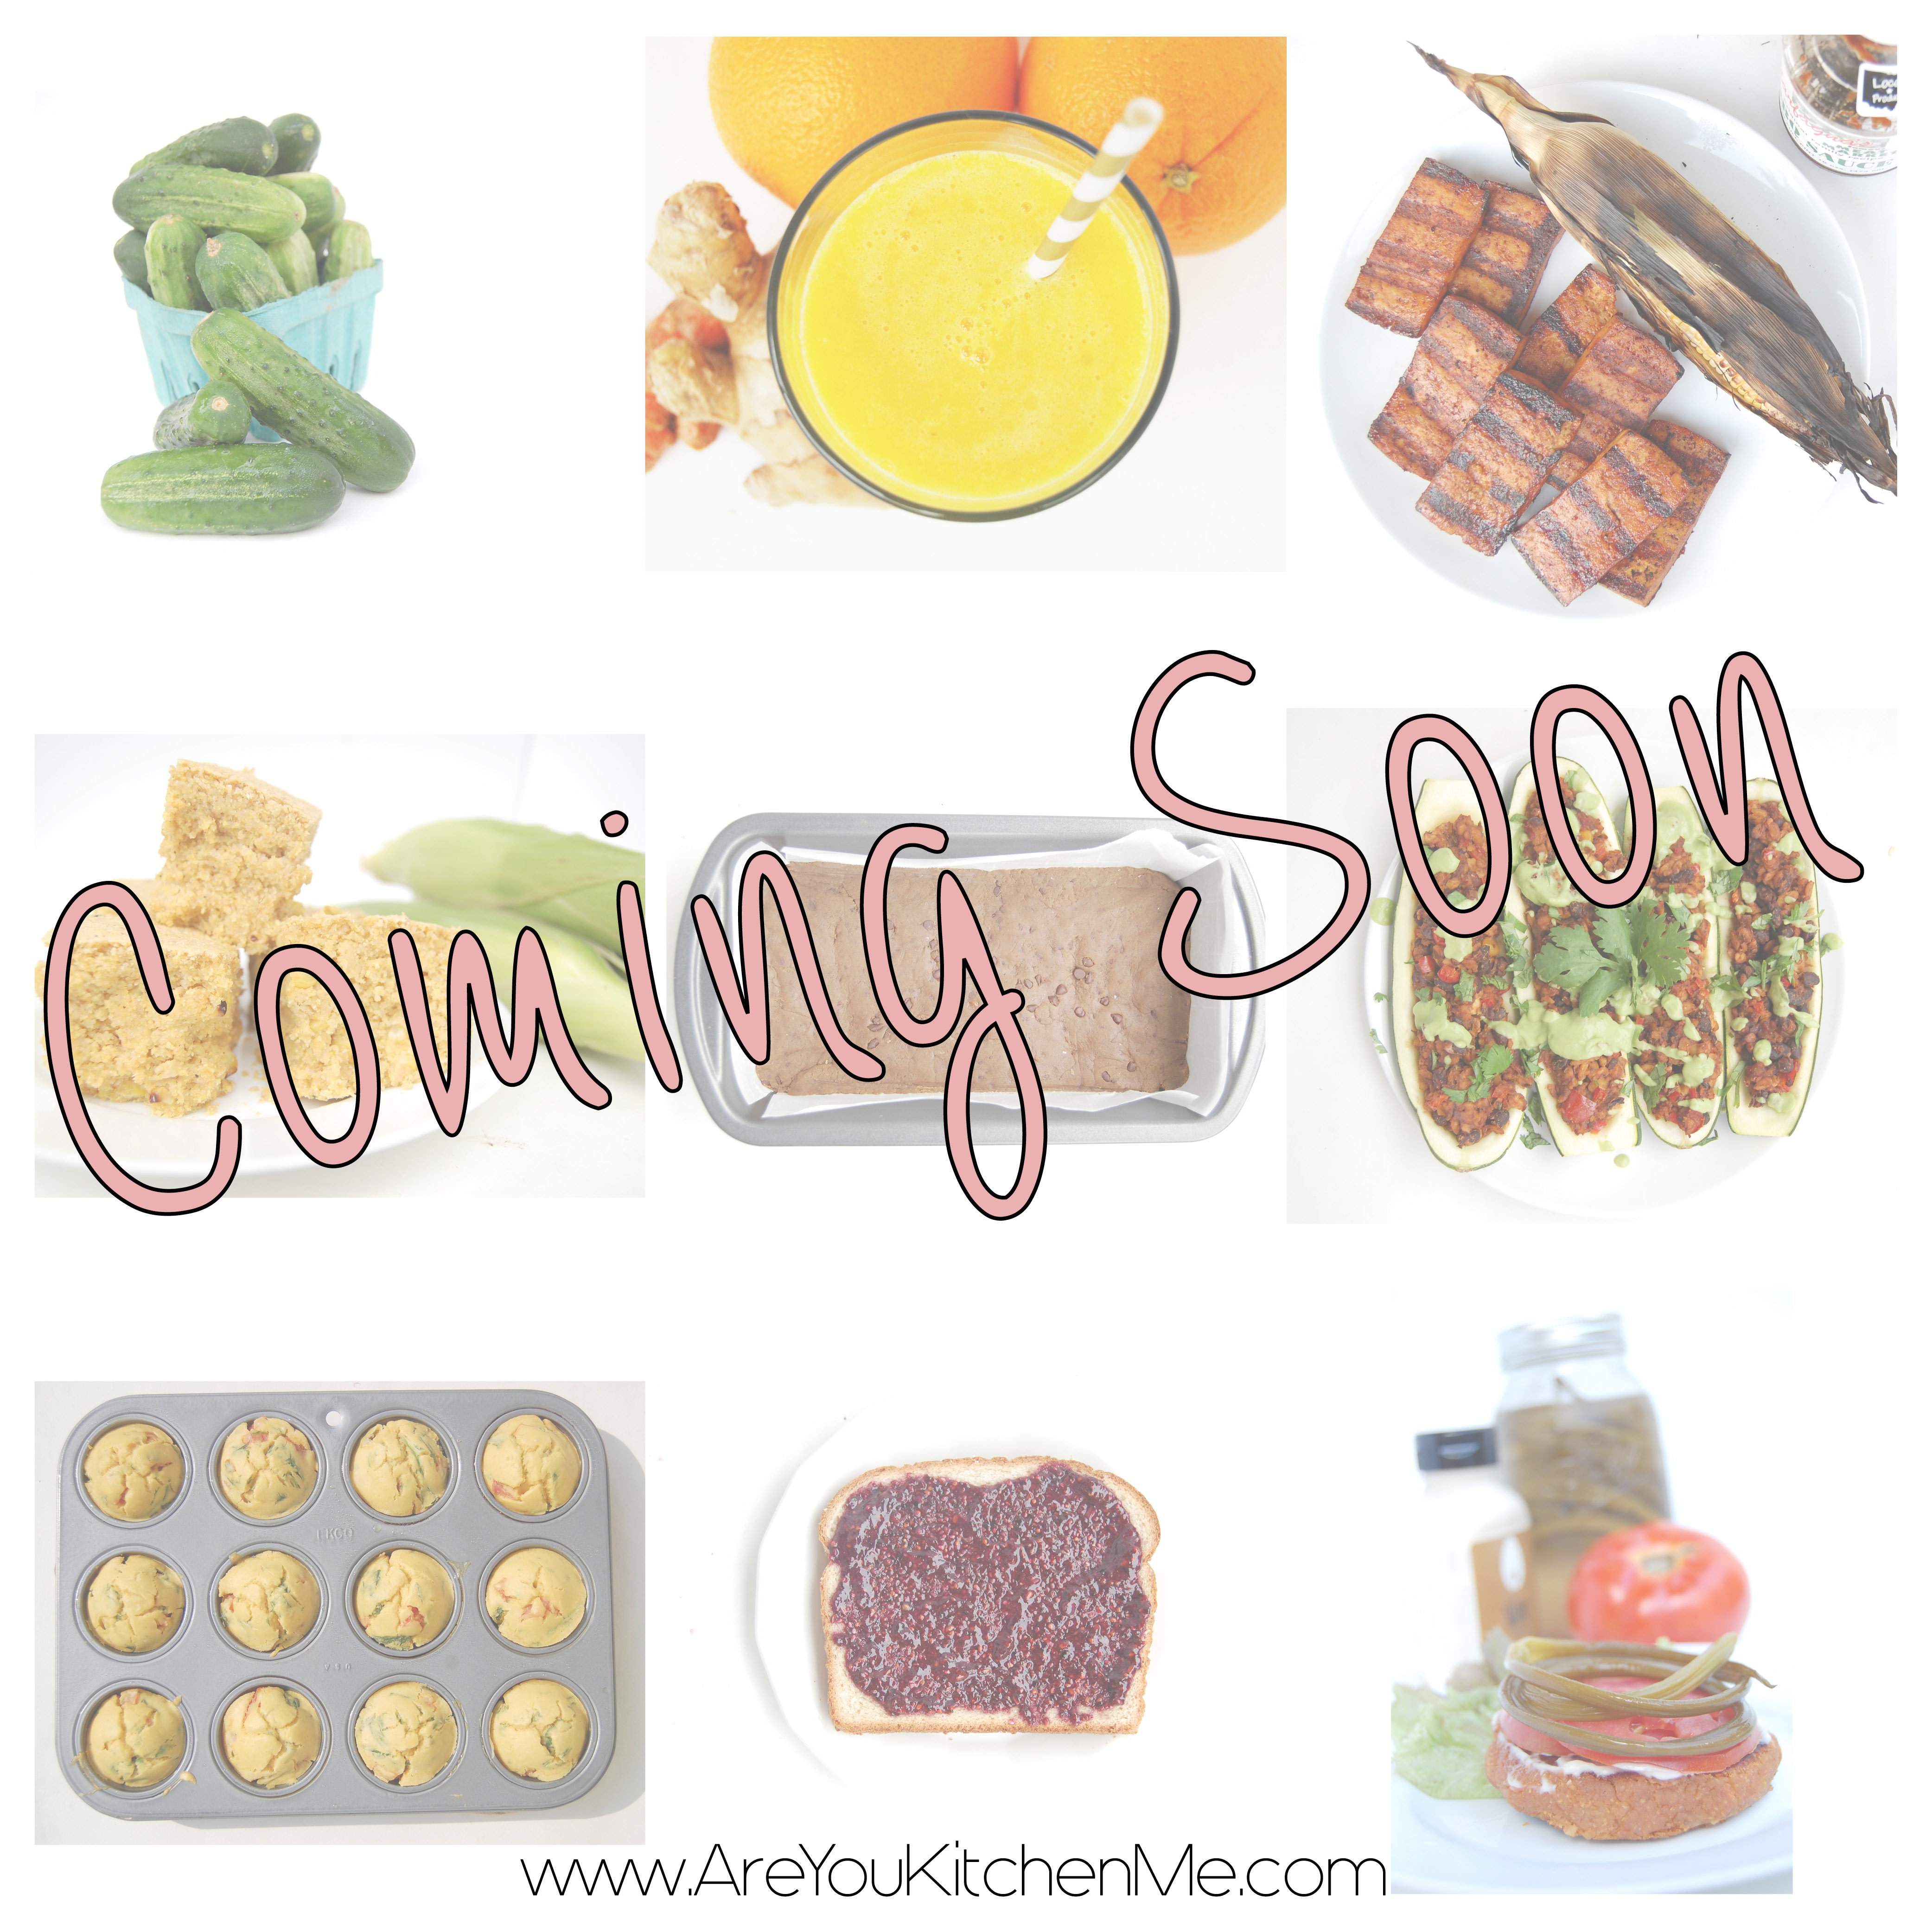 Coming Soon | AreYouKitchenMe.com